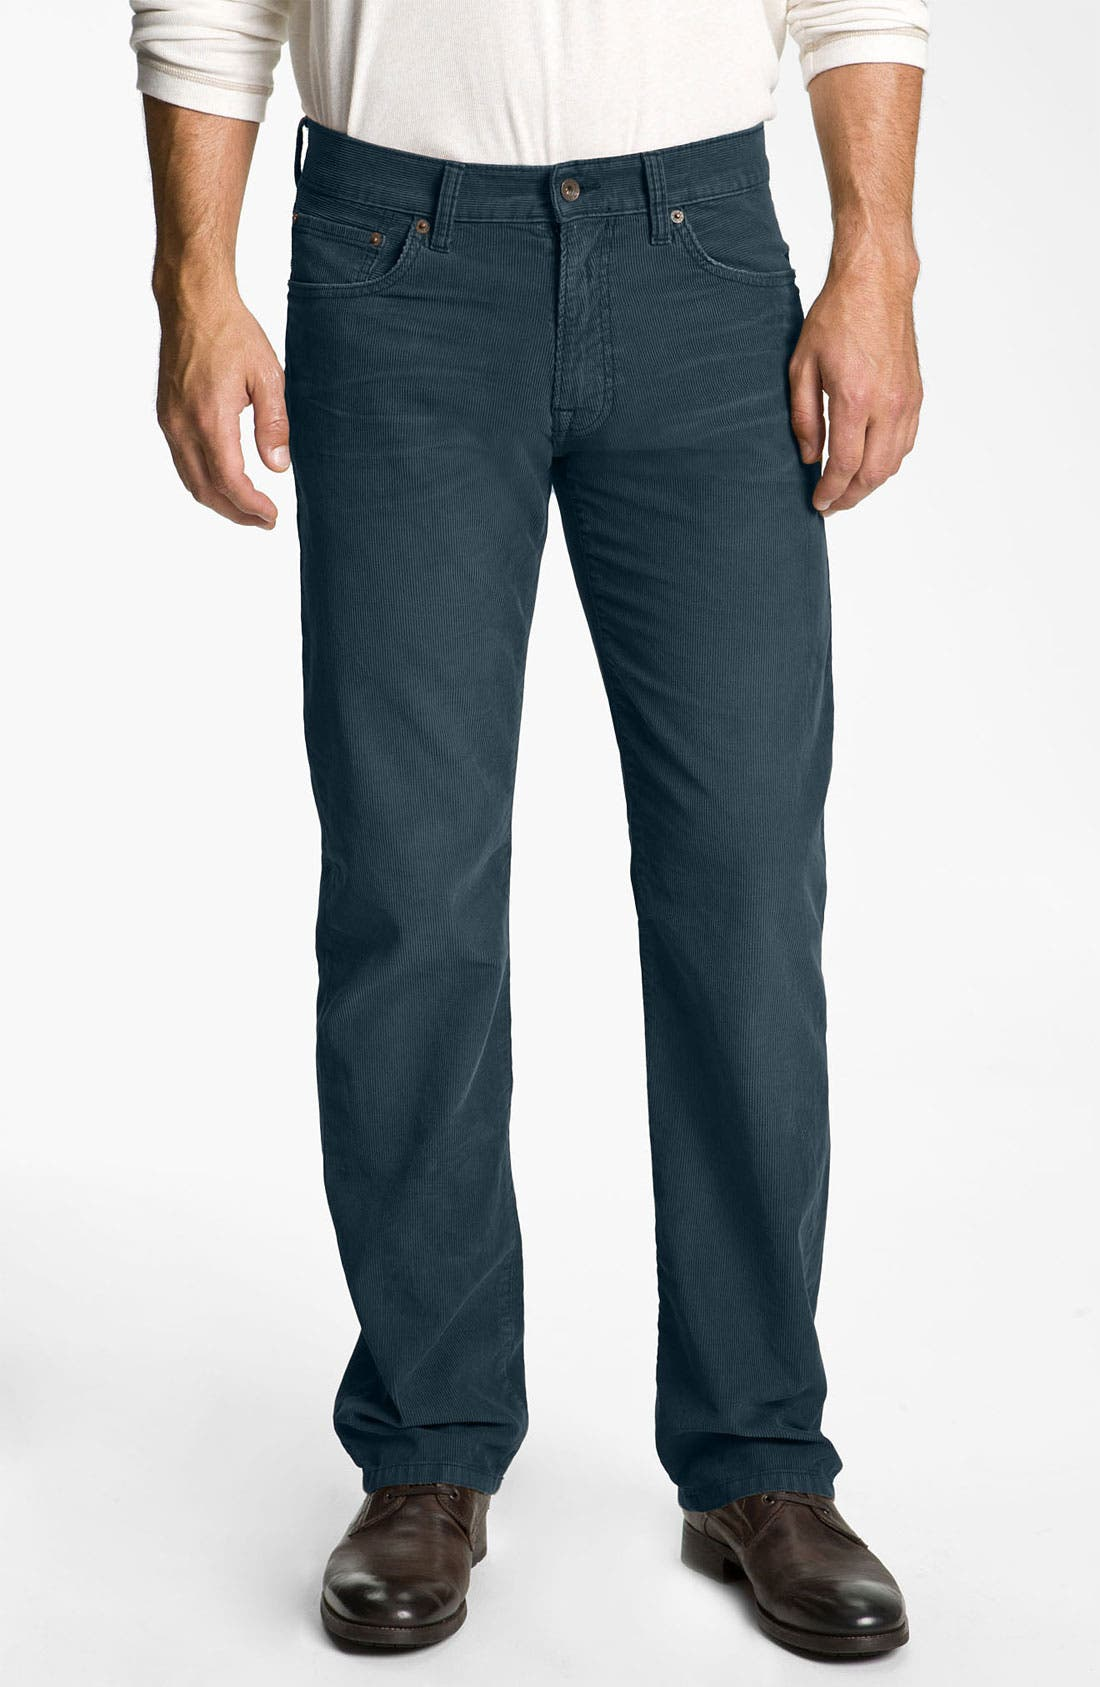 Alternate Image 1 Selected - Lucky Brand '221 Original' Straight Leg Corduroy Pants